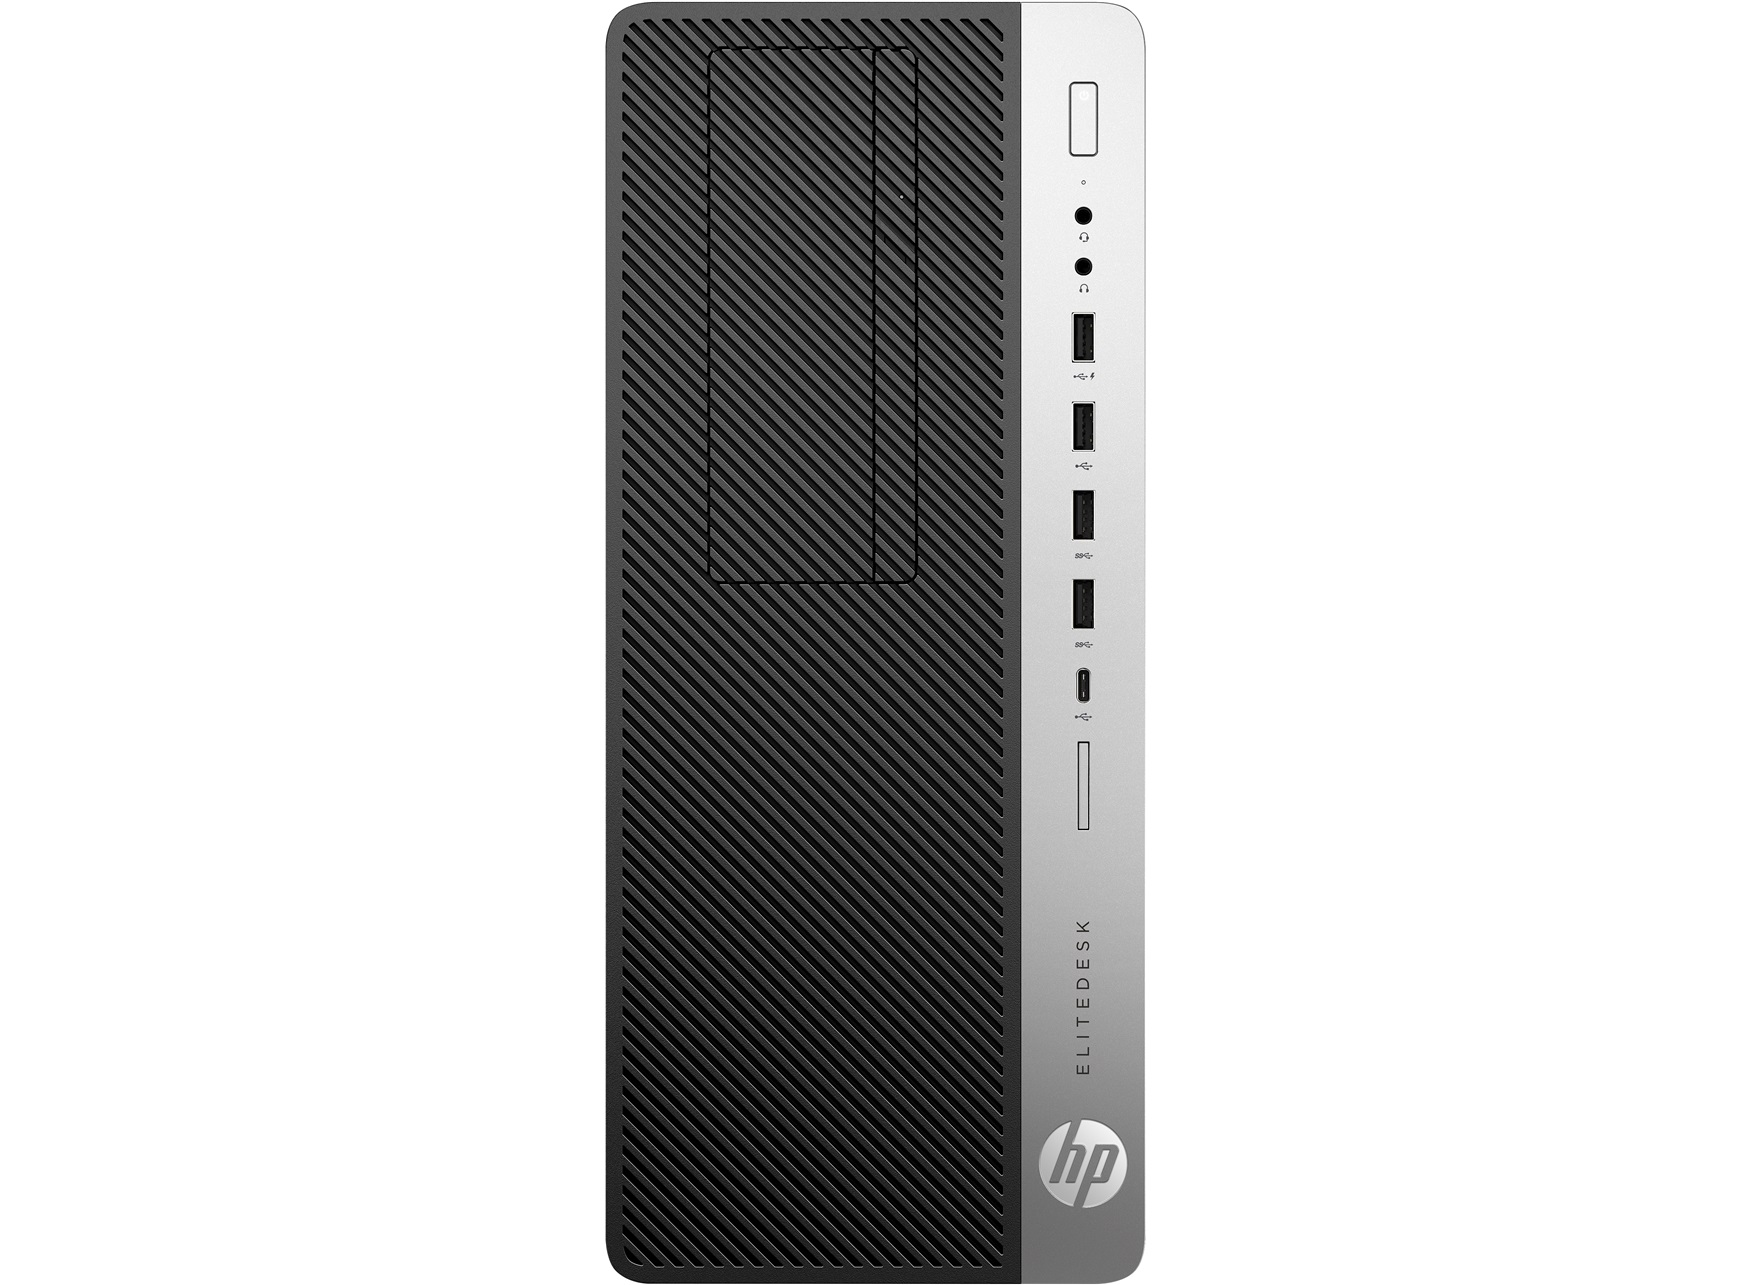 HP EliteDesk 800 G3 1ME55PA SFF Desktop